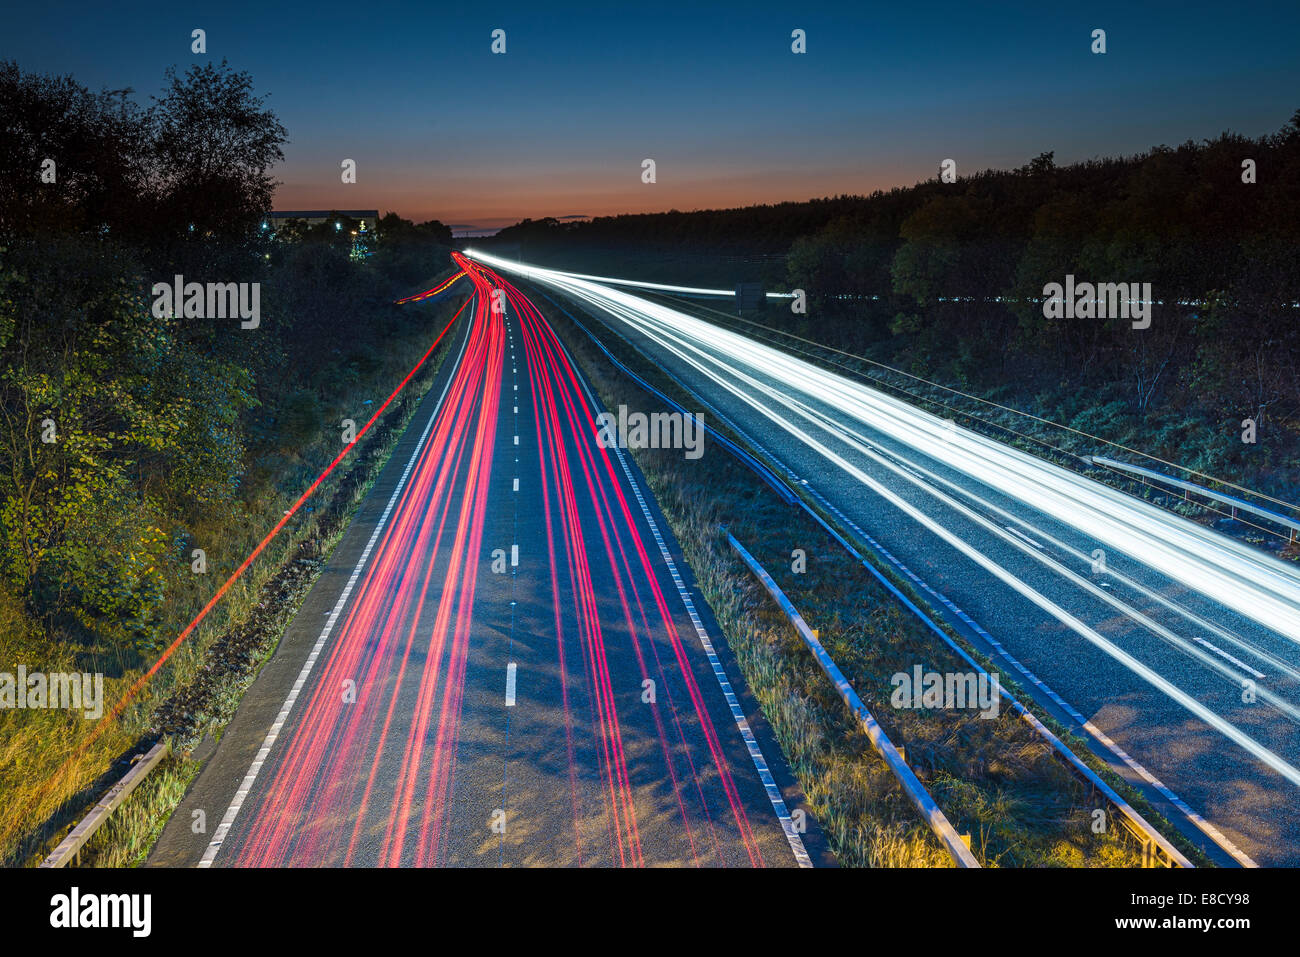 Light trails on the road - Stock Image